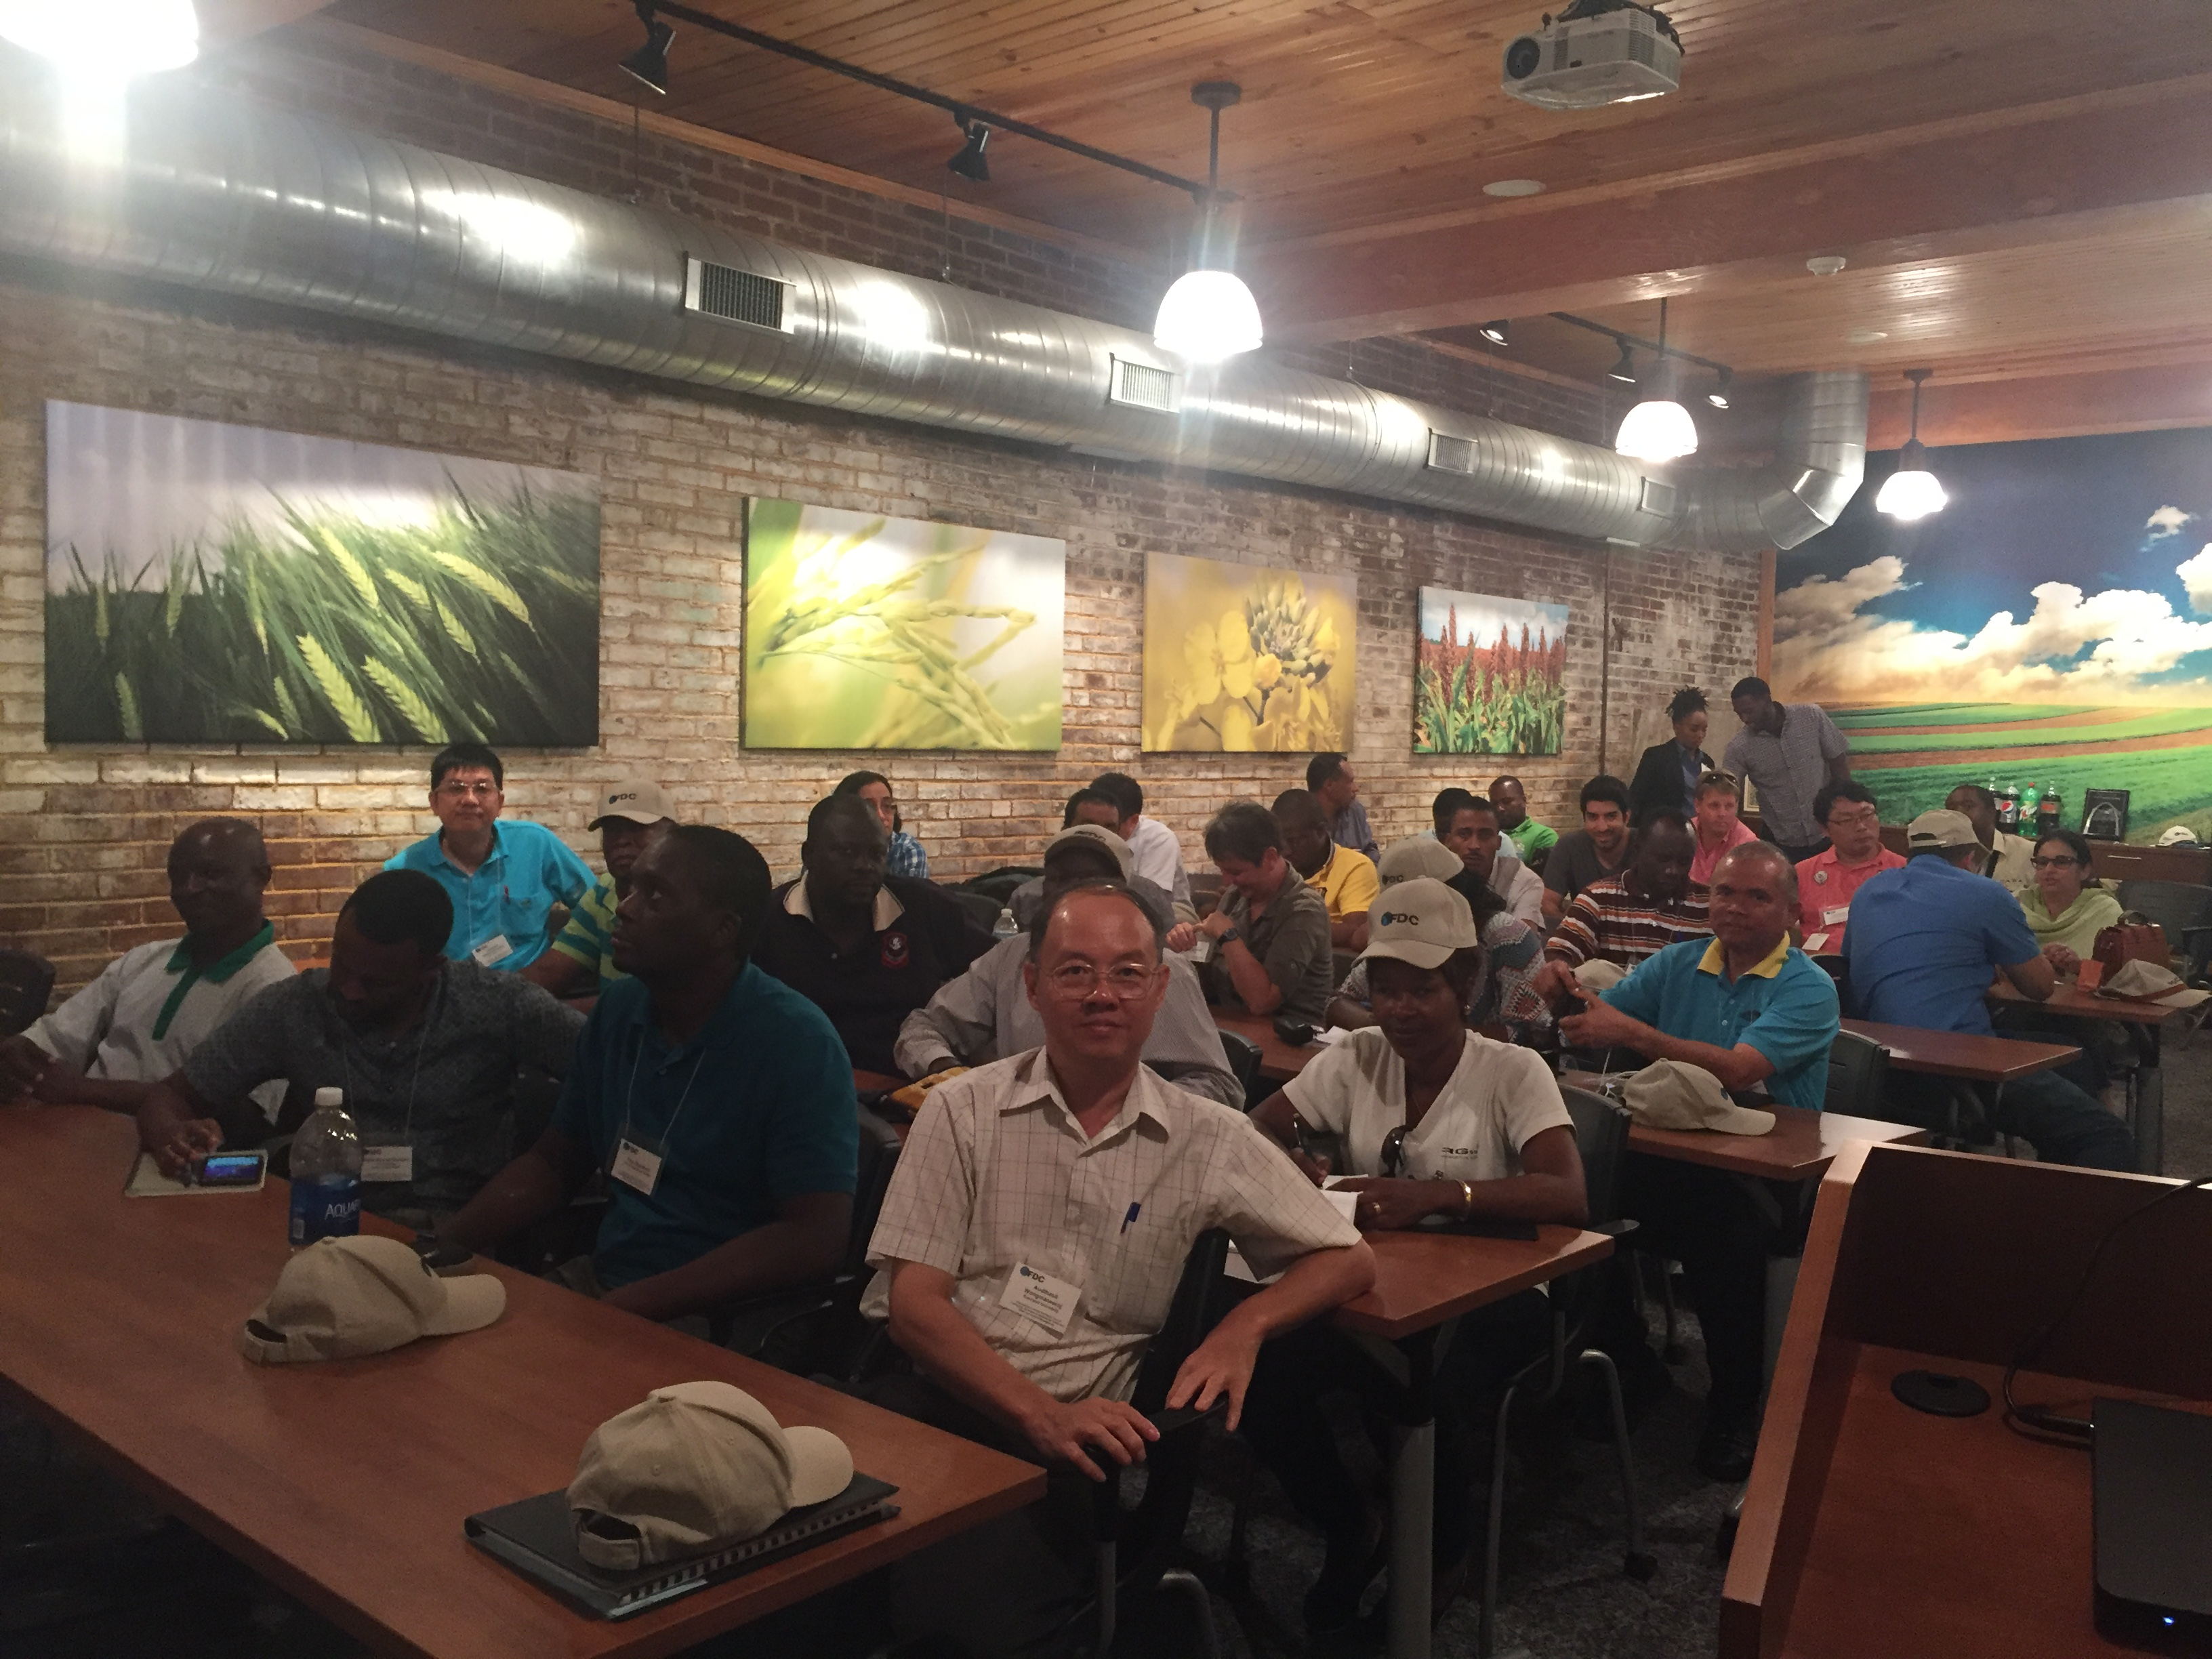 Lange-Stegmann Company in St. Louis, Missouri hosted attendees for a training session.